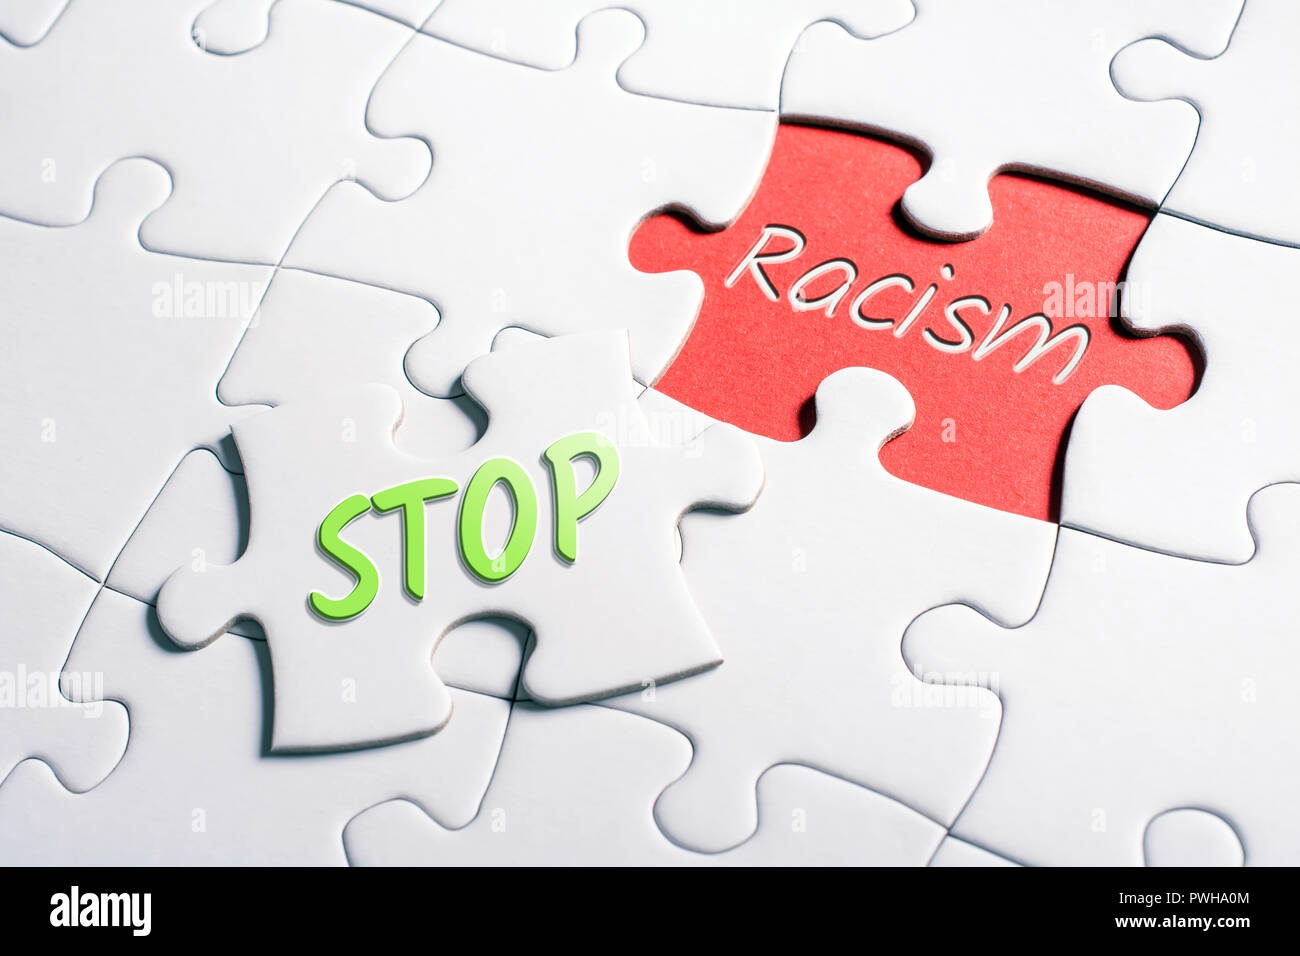 The Words Stop And Racism In Missing Piece Jigsaw Puzzle - Stock Image